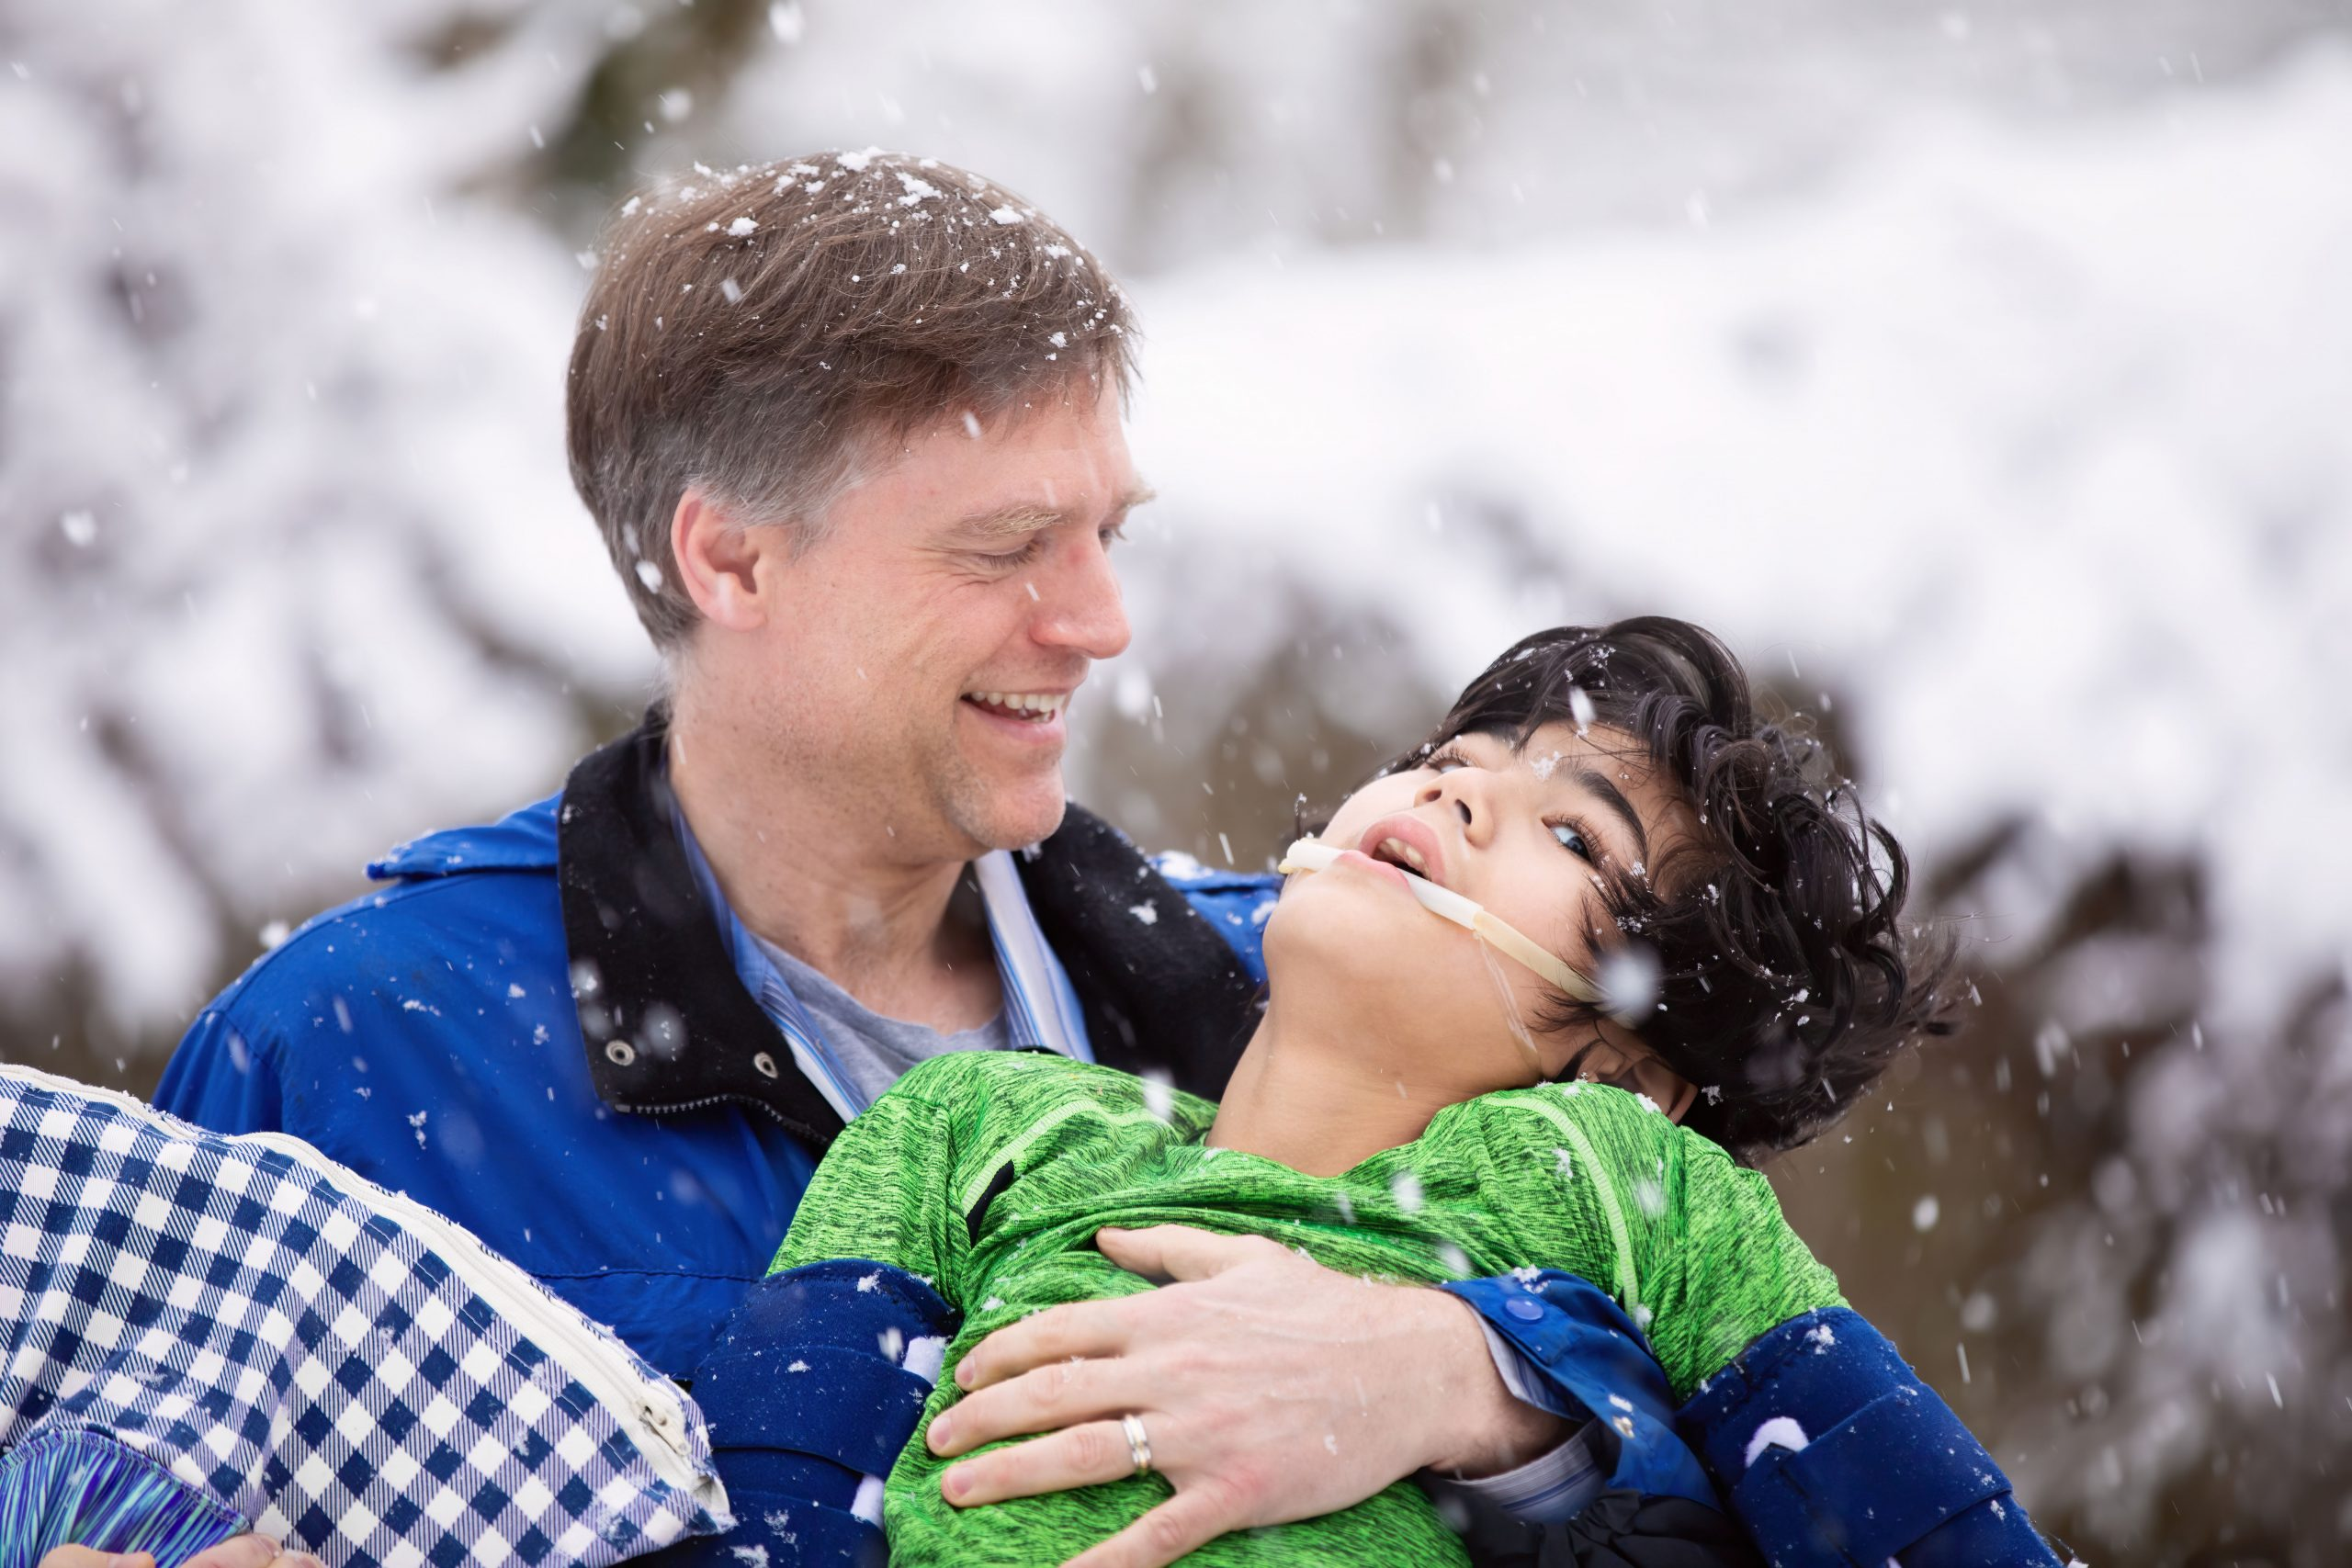 Smiling father holding disabled young son in his arms outdoors during snowfall. Child has cerebral palsy.